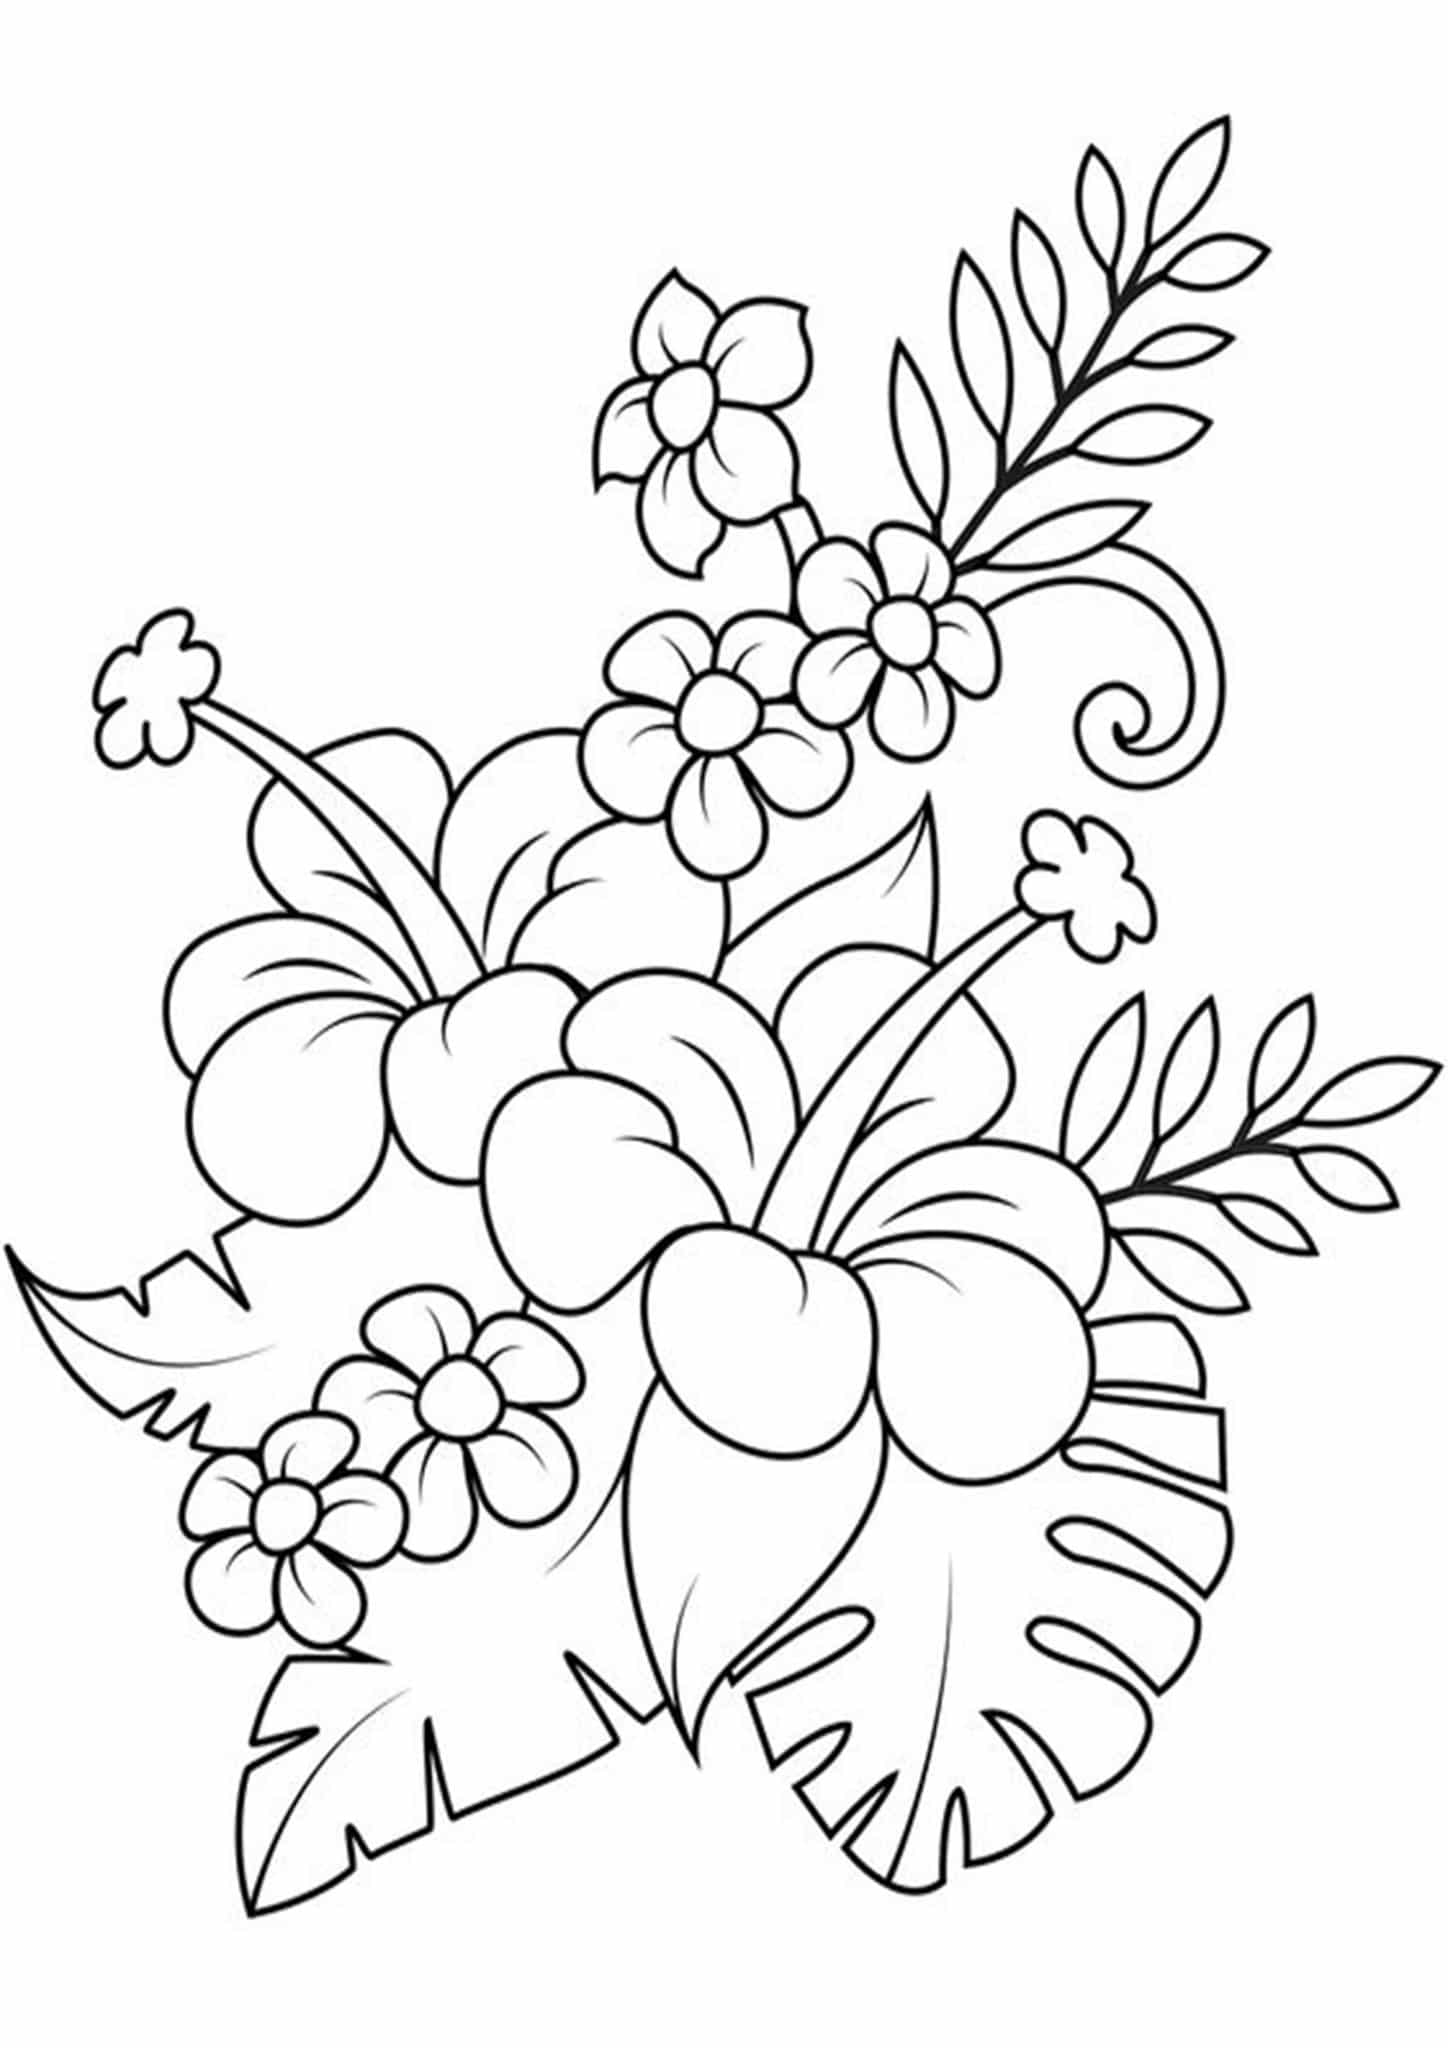 free printable flower coloring pages free printable hibiscus coloring pages for kids printable coloring flower free pages